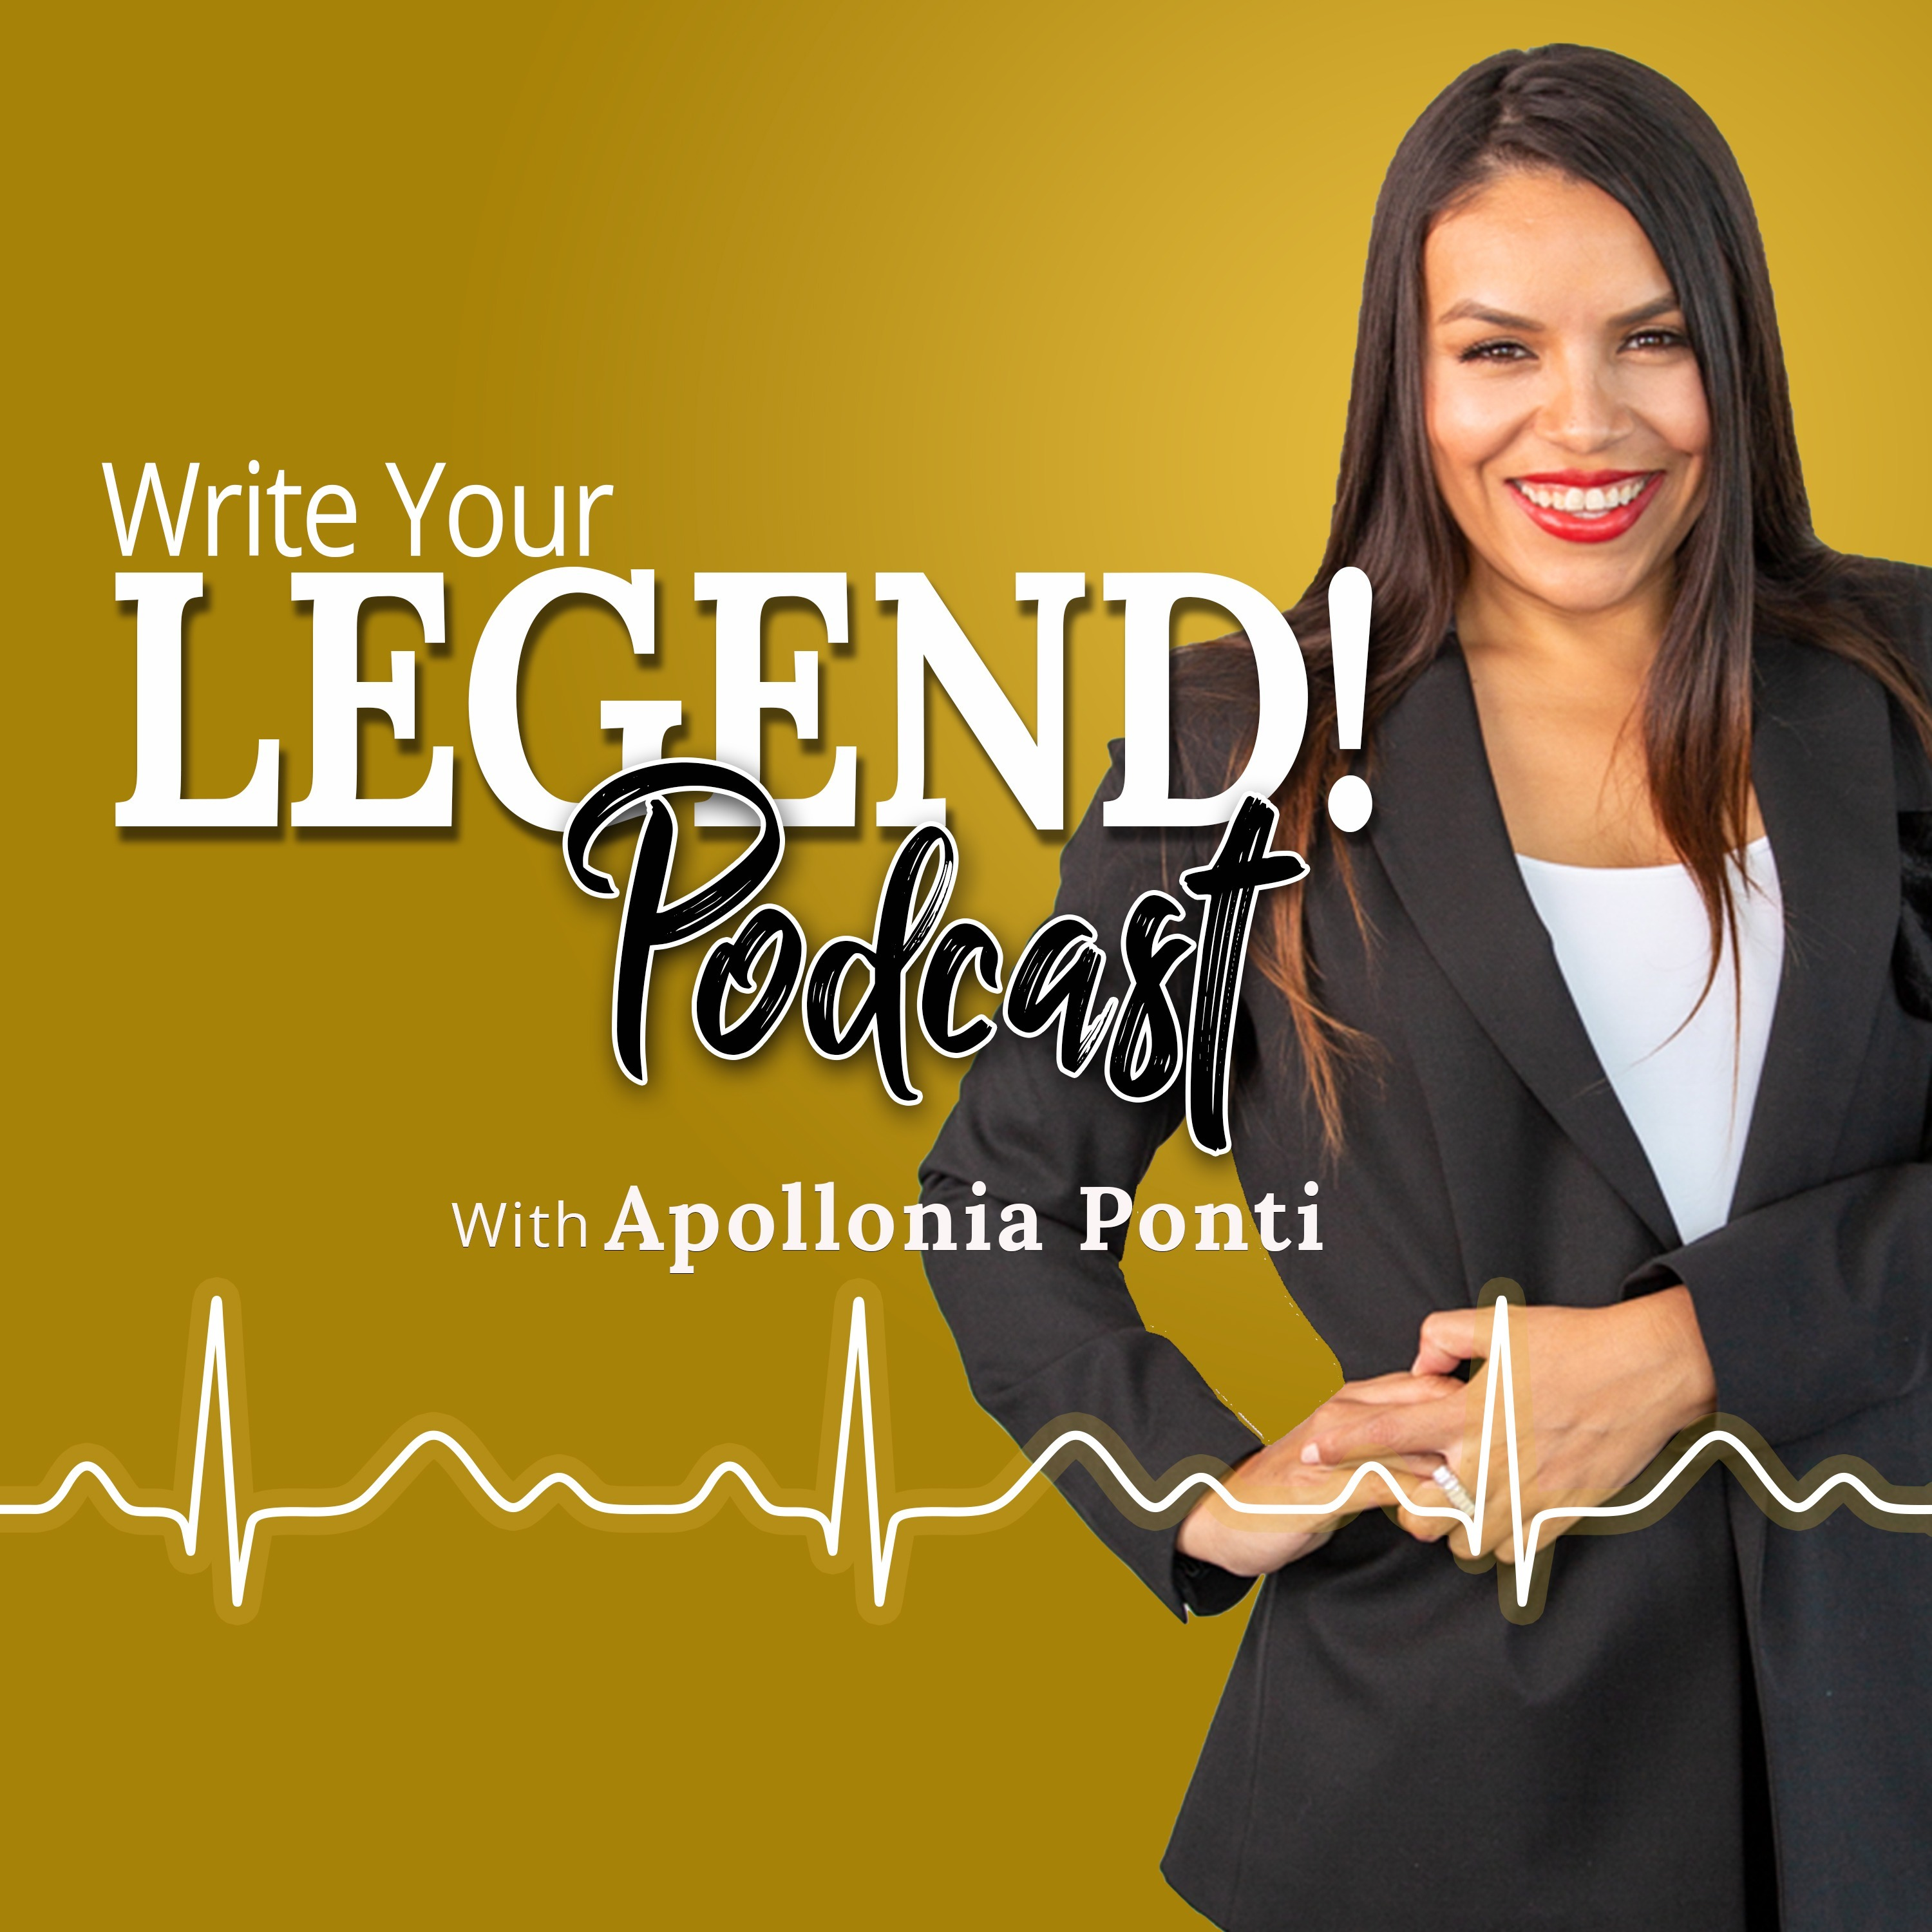 How to Approach a Girl! | Write Your Legend Podcast with Apollonia Ponti  show art